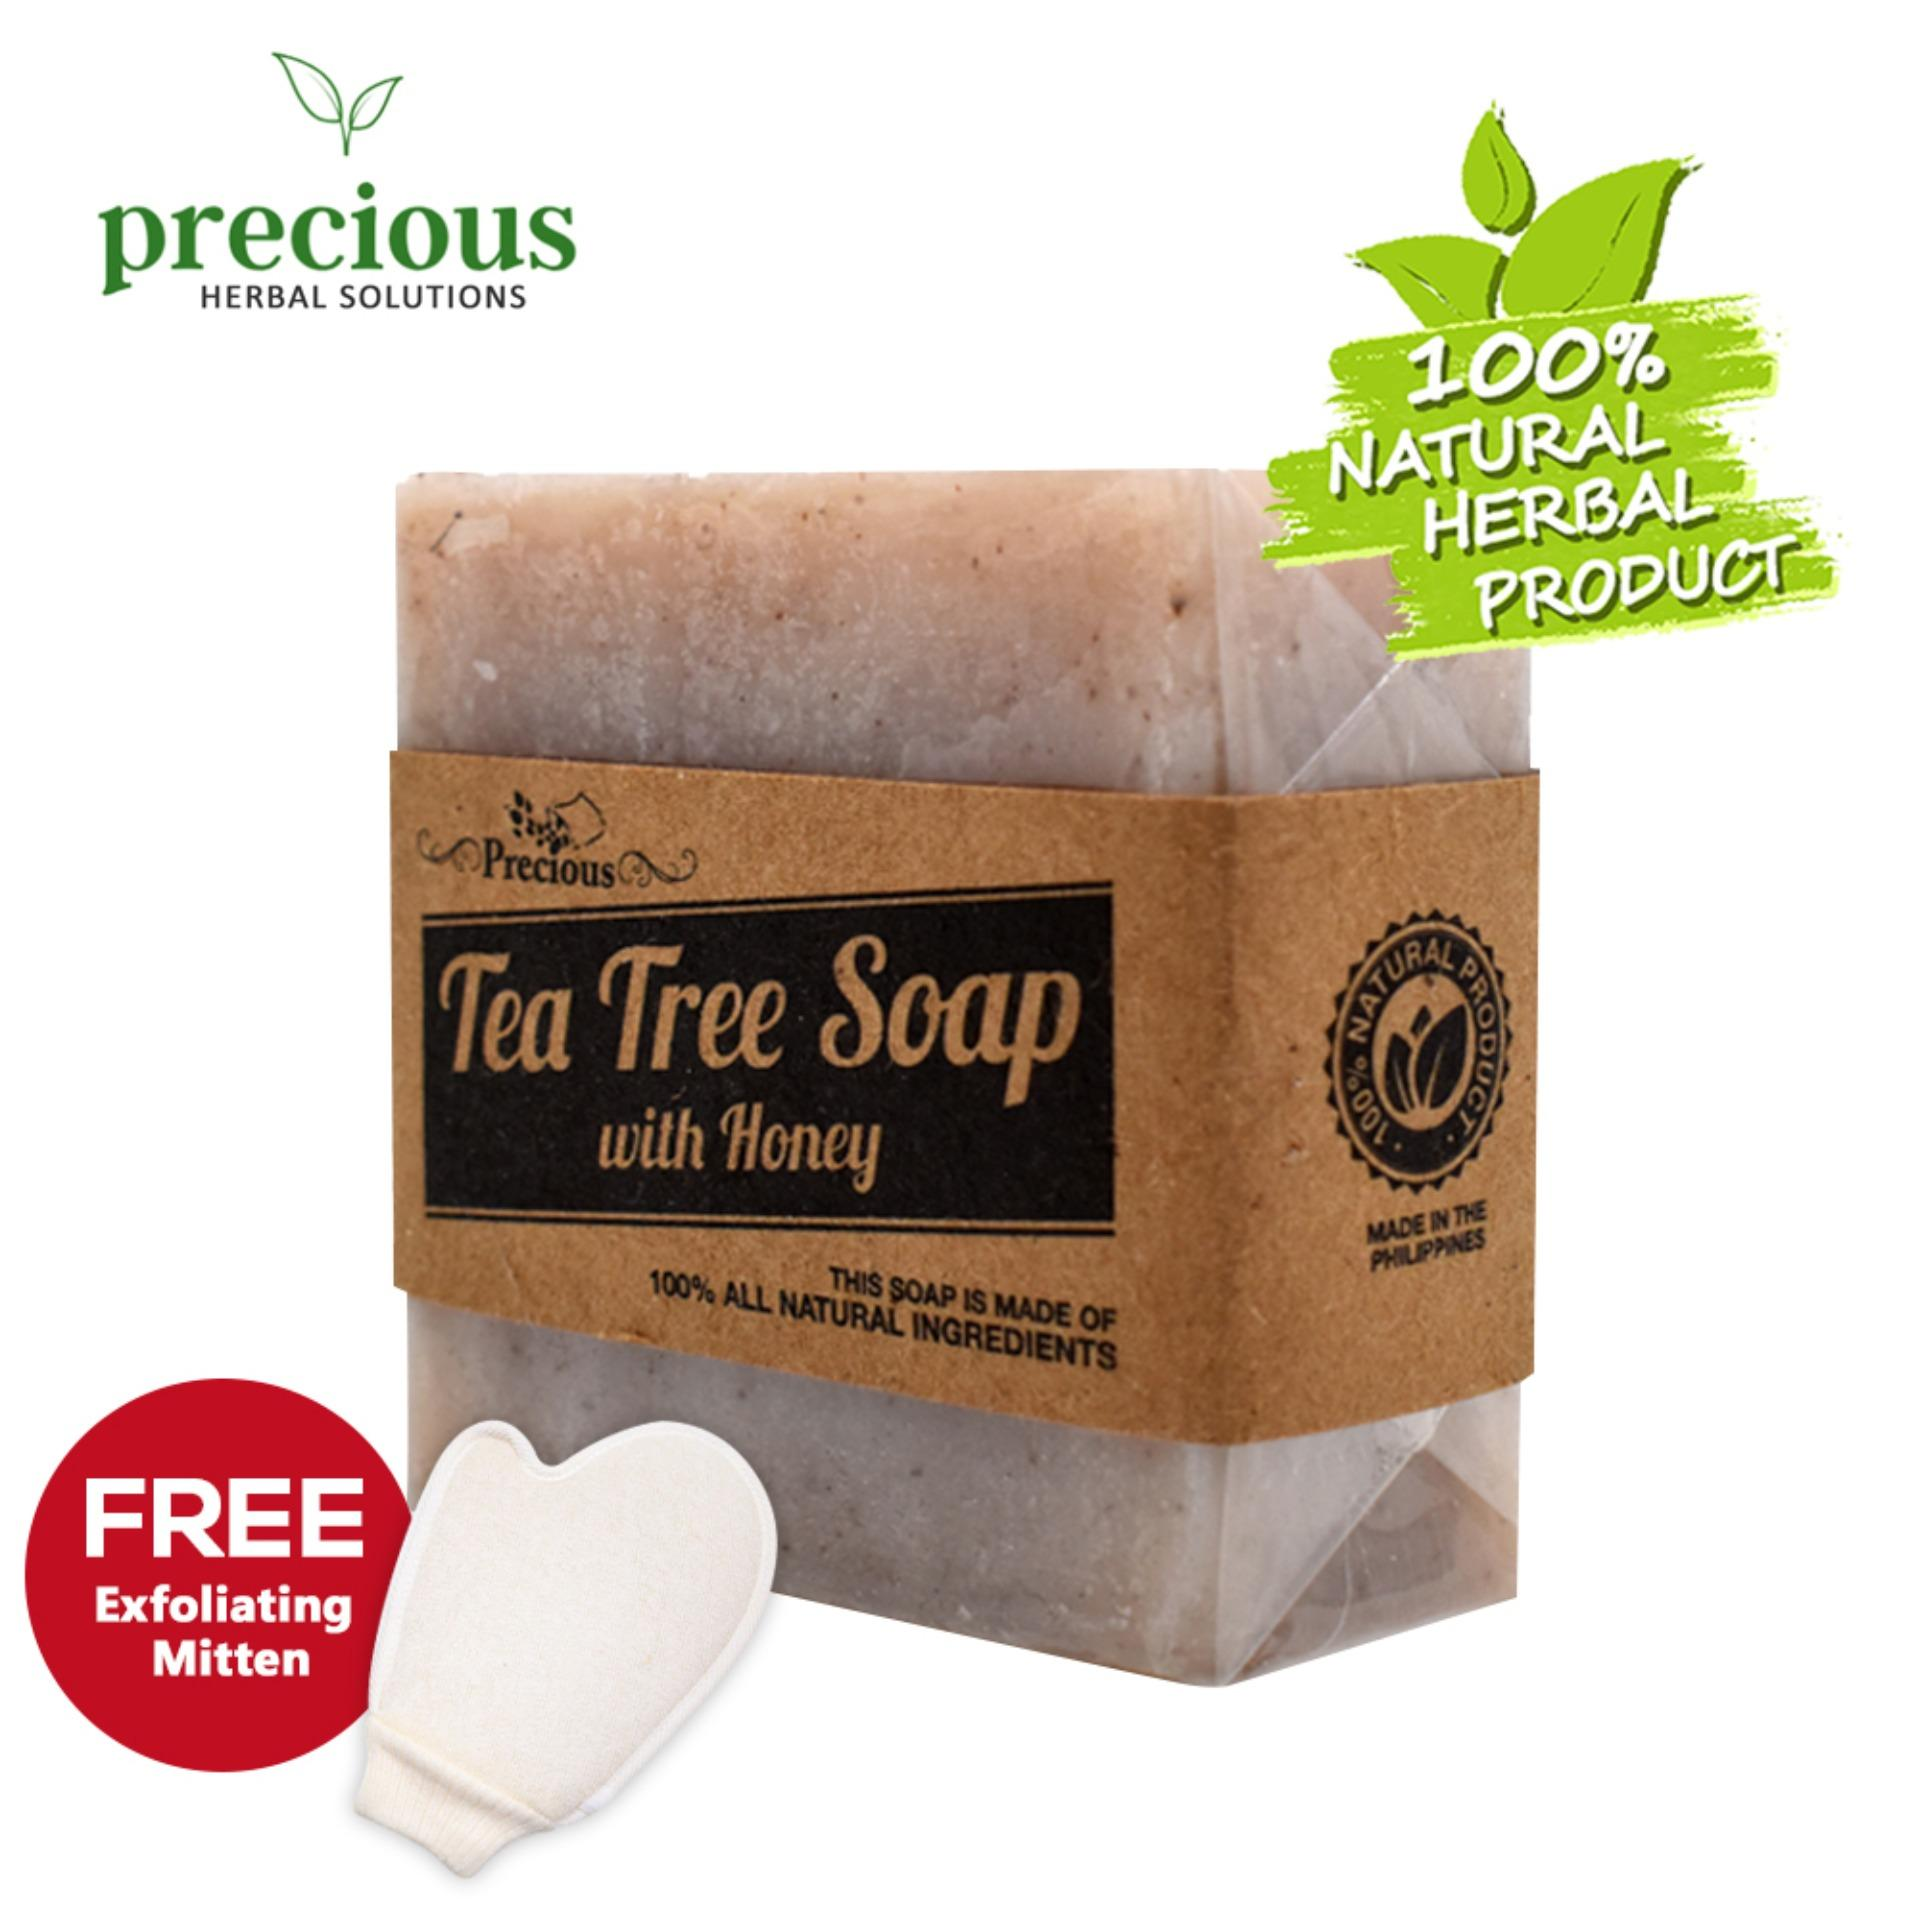 Precious Herbal Natural Tea Tree Soap with Shower Mitten (White) Natural  Antiseptic to treat other skin infections while smoothes skin and remove  dead